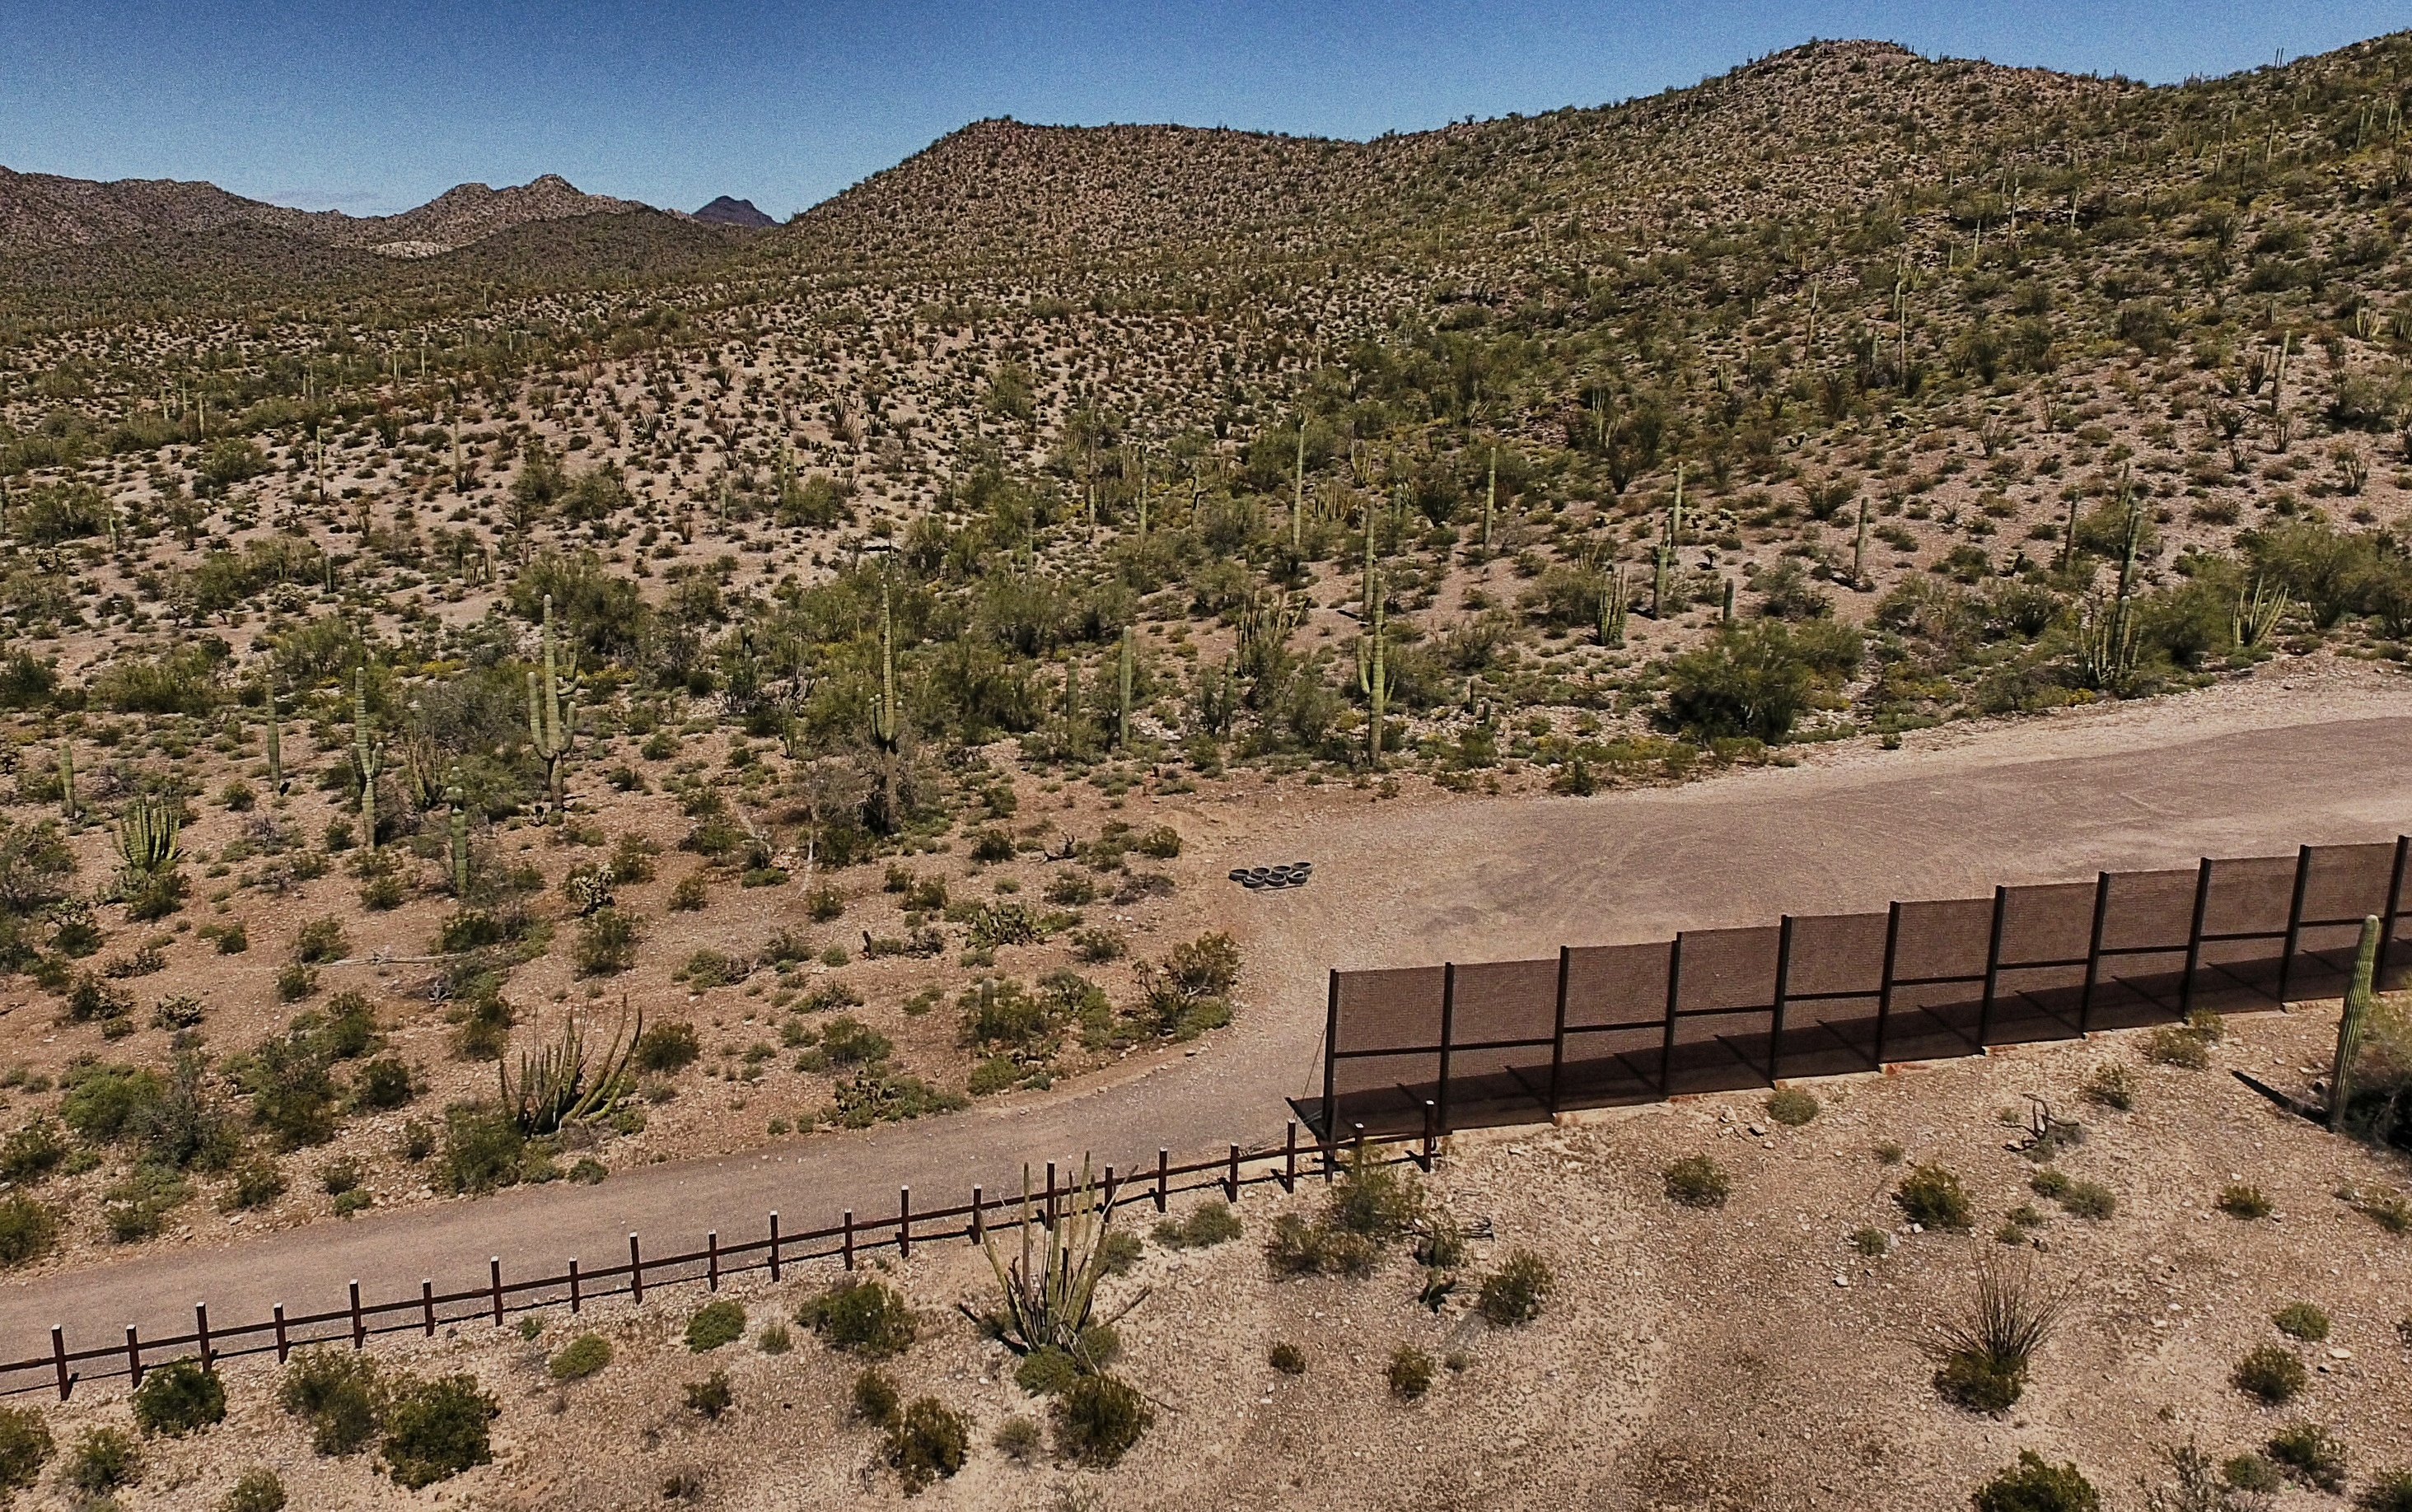 View of the metal fence along the border in Sonoyta, Sonora state, northern Mexico, between the Altar desert in Mexico and the Arizona desert in the United States, on March 27, 2017. PEDRO PARDO—AFP/Getty Images